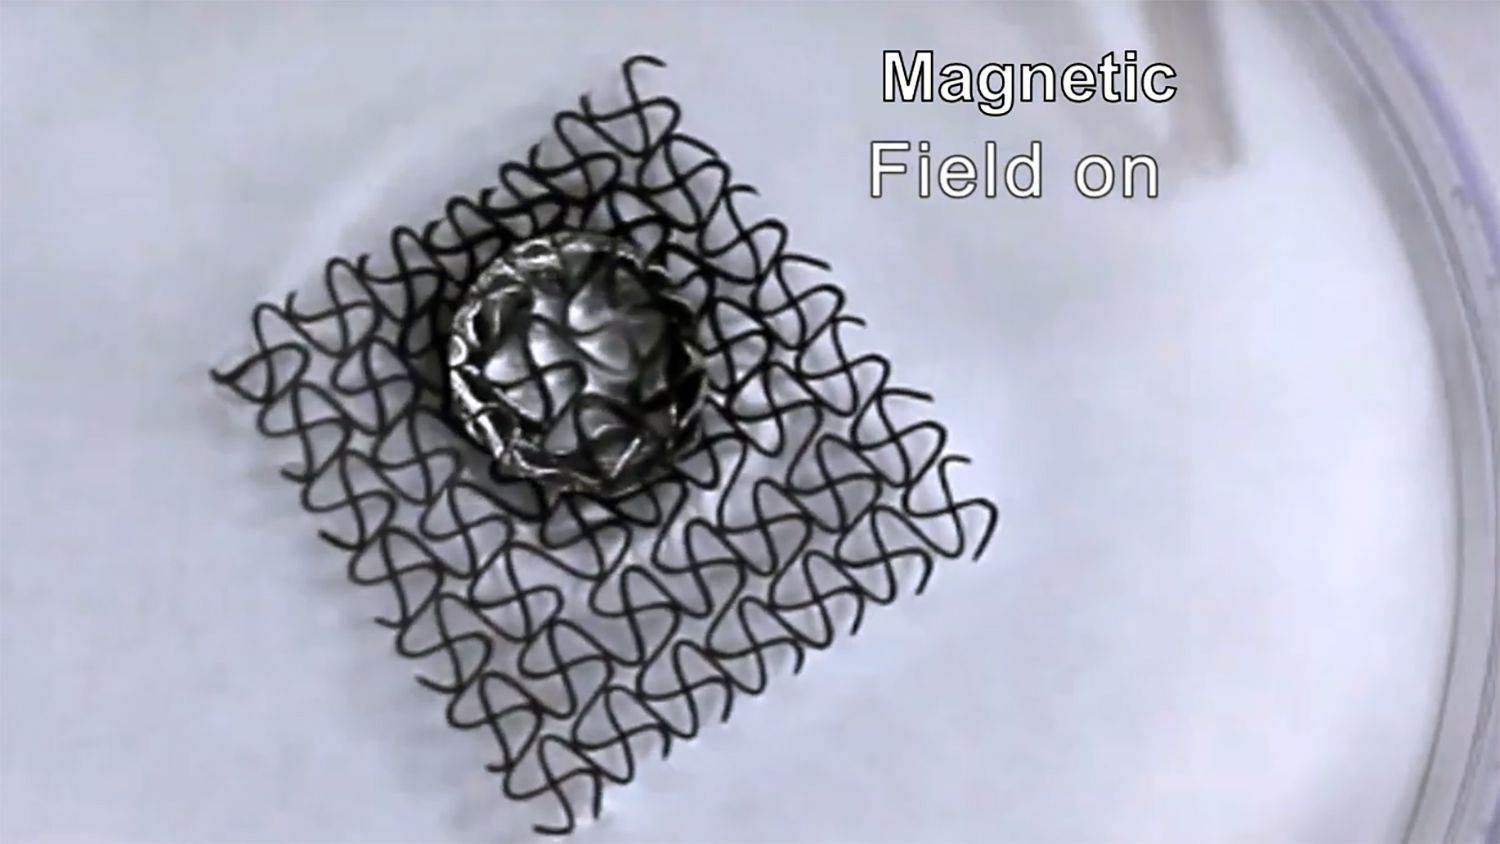 A still image from a video showing a 3-D printed magnetic water dispenser.